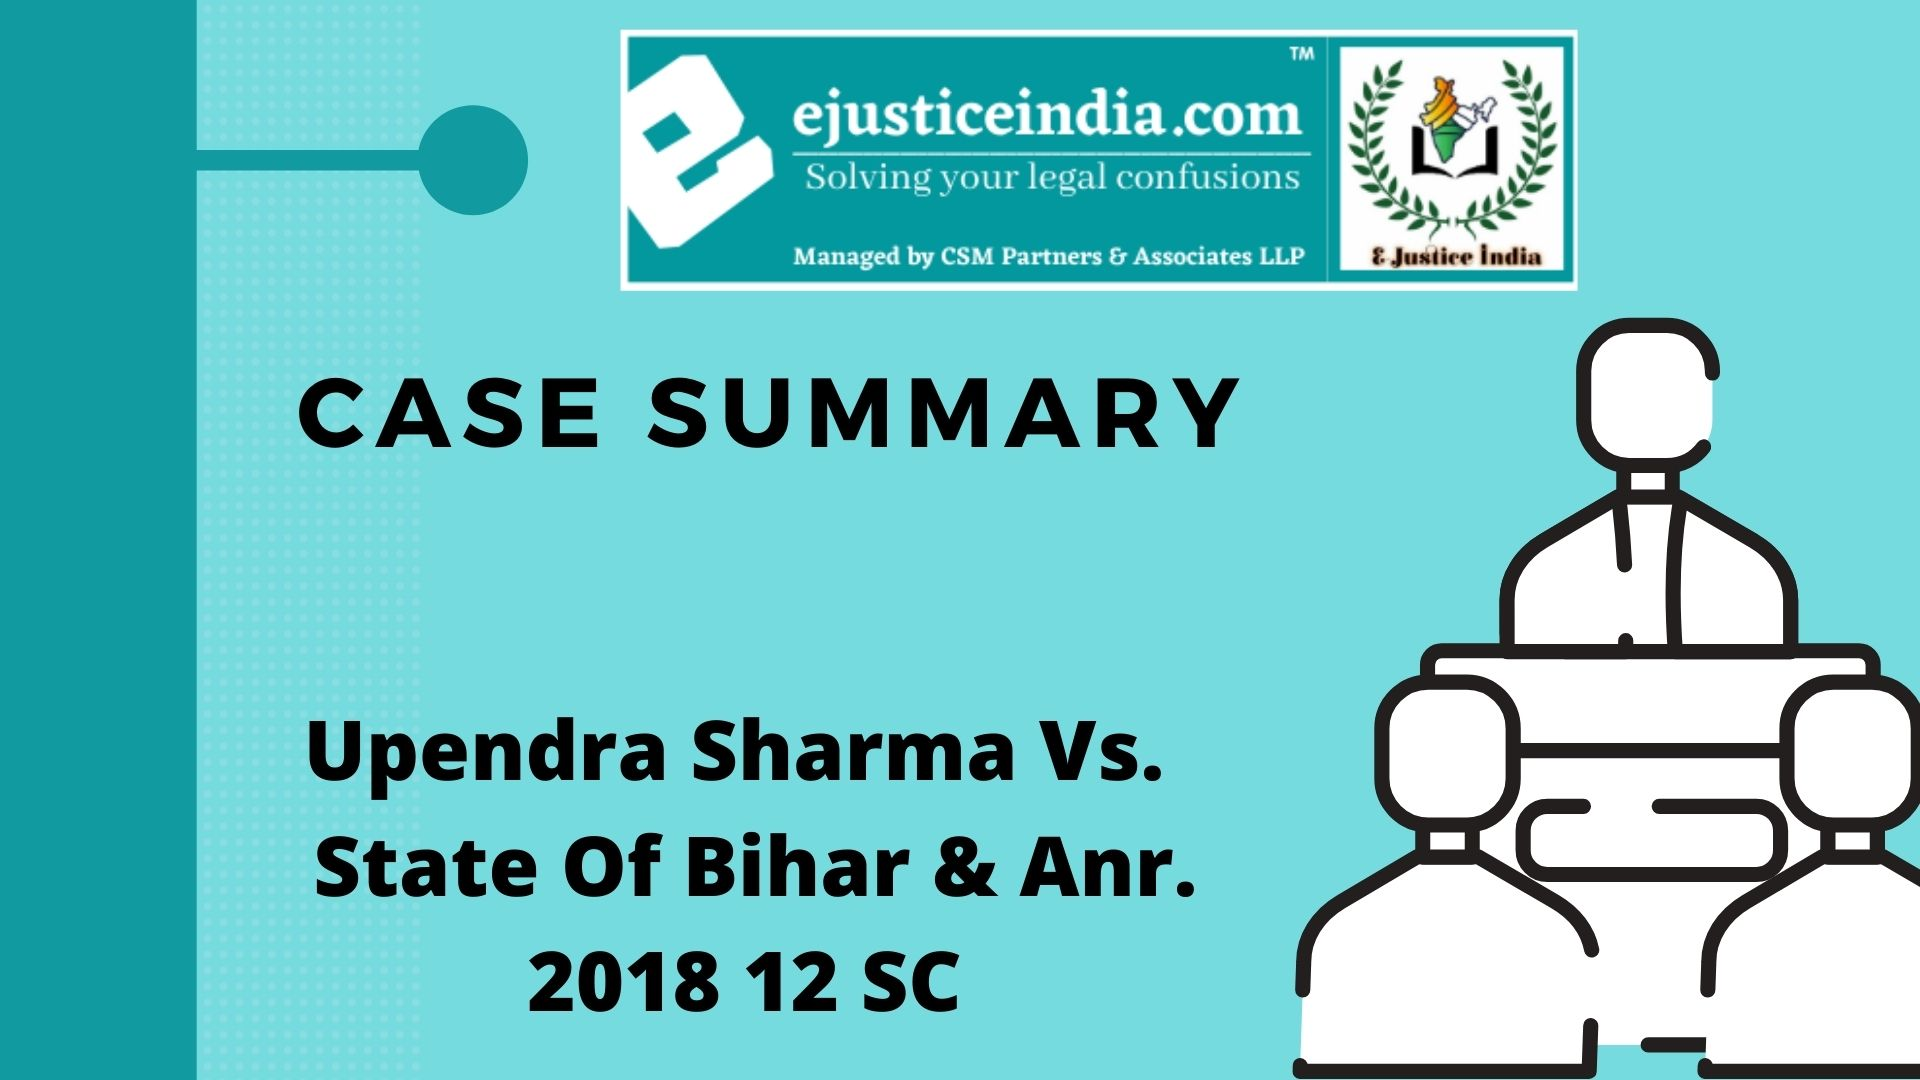 Upendra Sharma Vs. State Of Bihar & Anr. 2018 12 SC